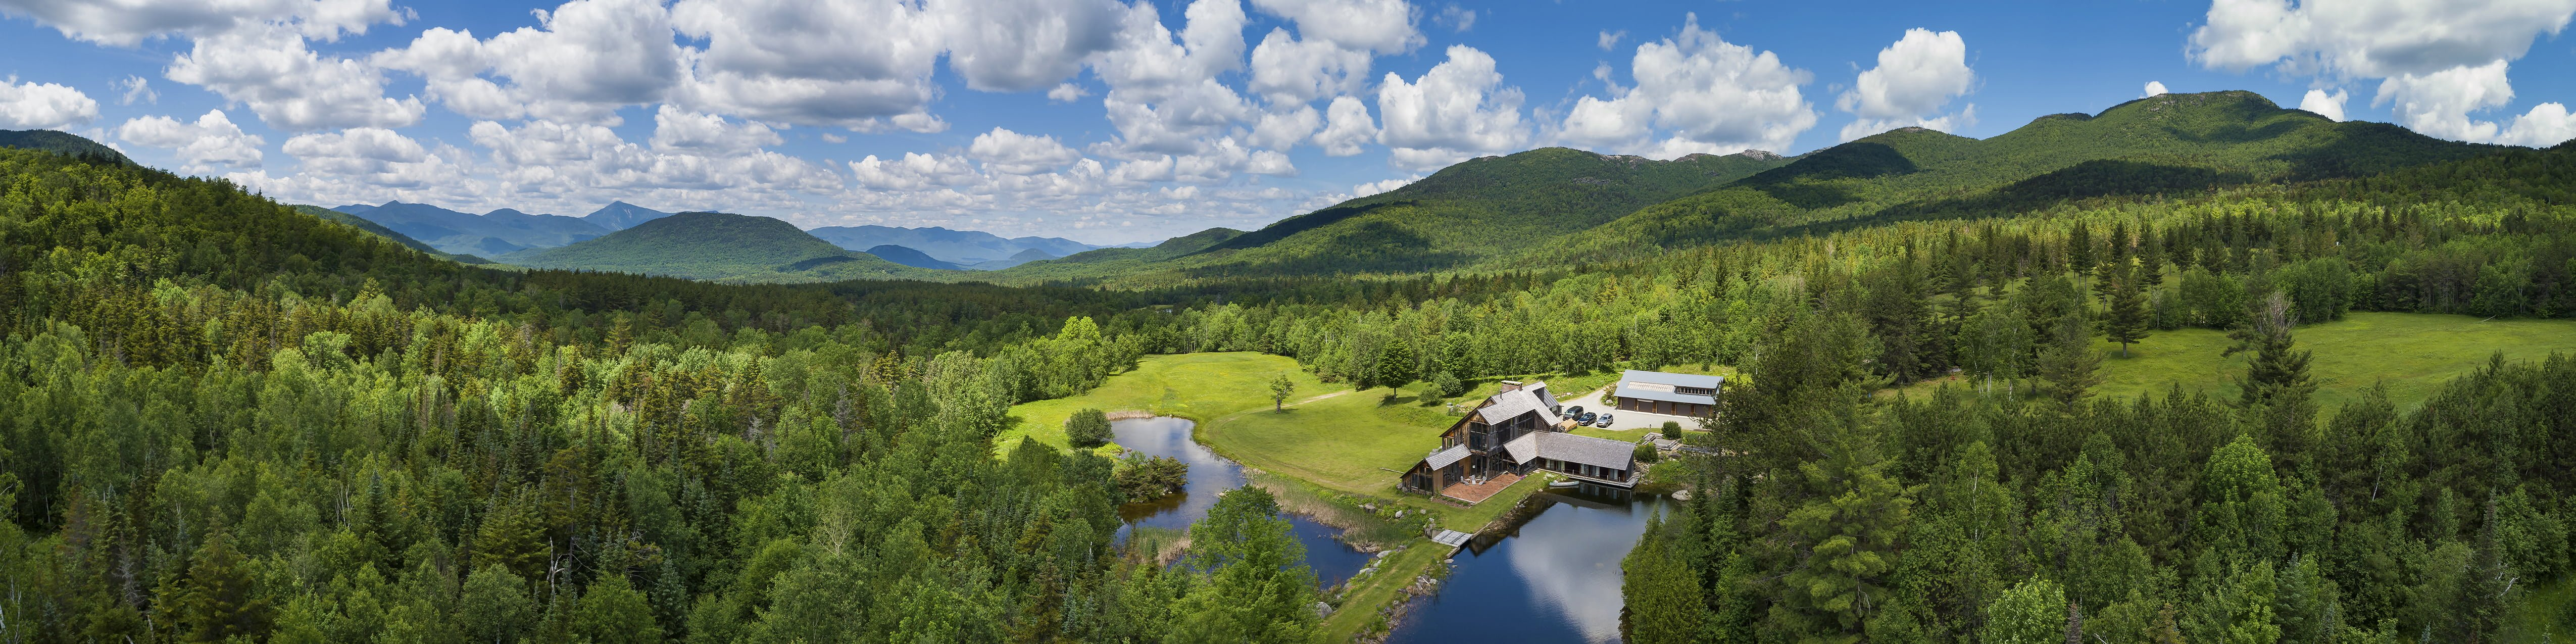 GLEN OVERLOOK:  Adirondack High Country Wilderness Retreat